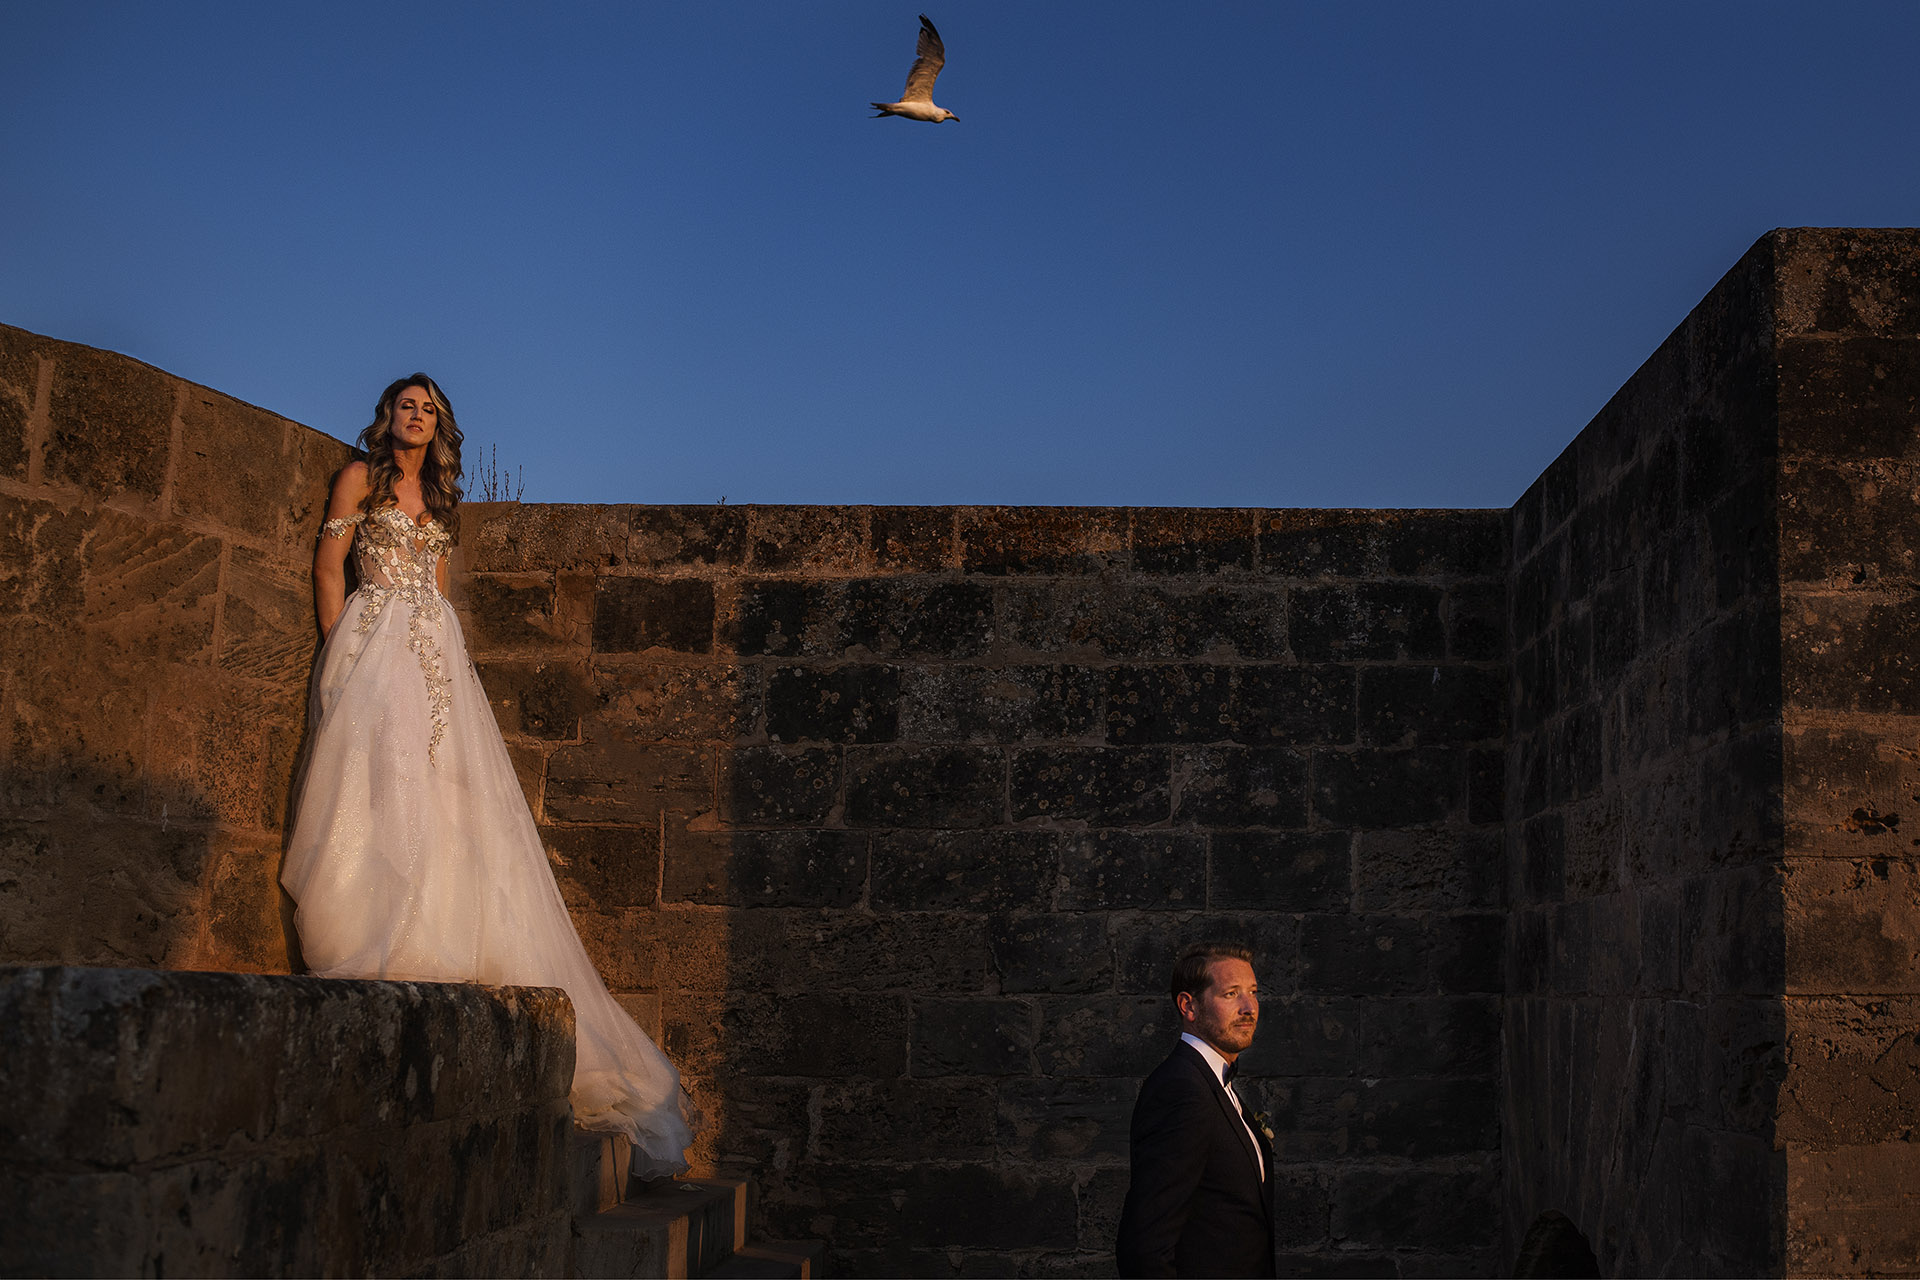 Mallorca wedding, Mallorca wedding photographer, Victor Lax, Galia Lahav, Castillo de San Carlos, Mallorca wedding planner, Best wedding photographer in Mallorca, Best wedding photographer